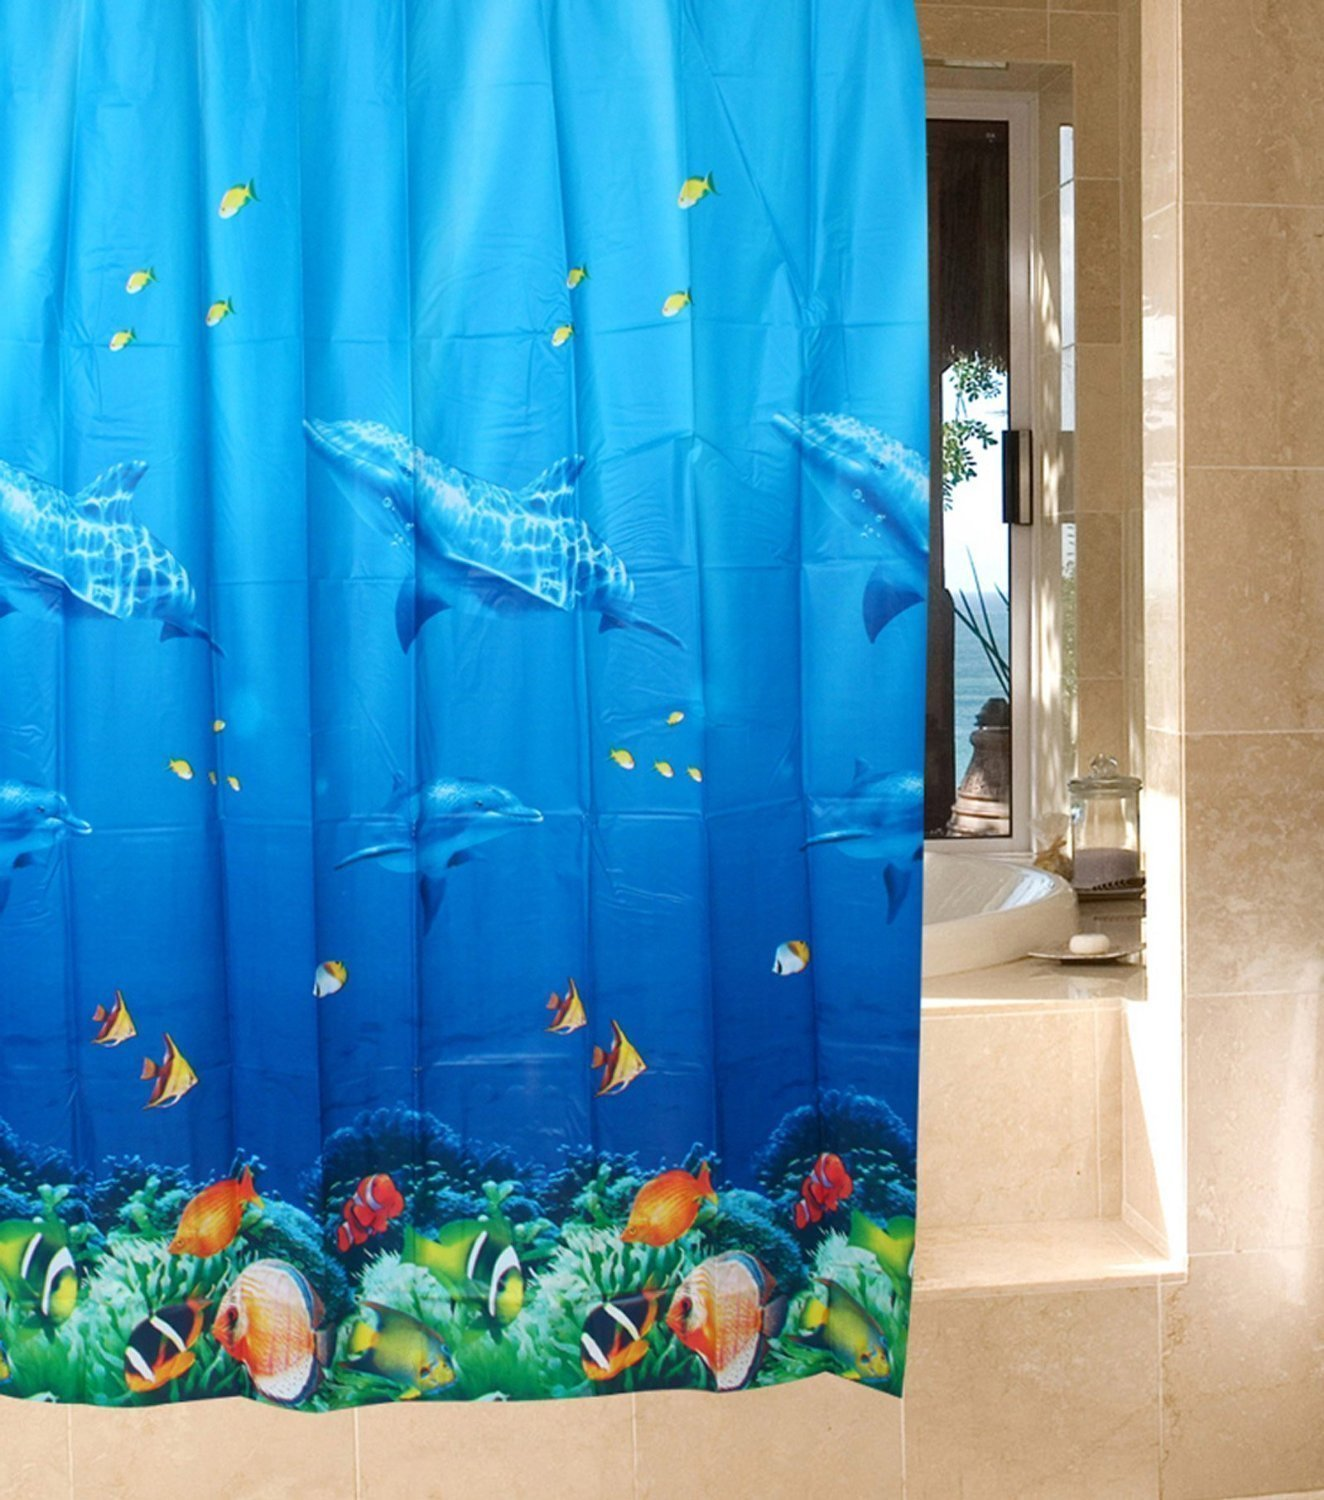 Get Quotations Multicolor Dolphin Pattern Tropical Fish Coral Ocean Theme Bath Shower Curtain With 12 Hooks